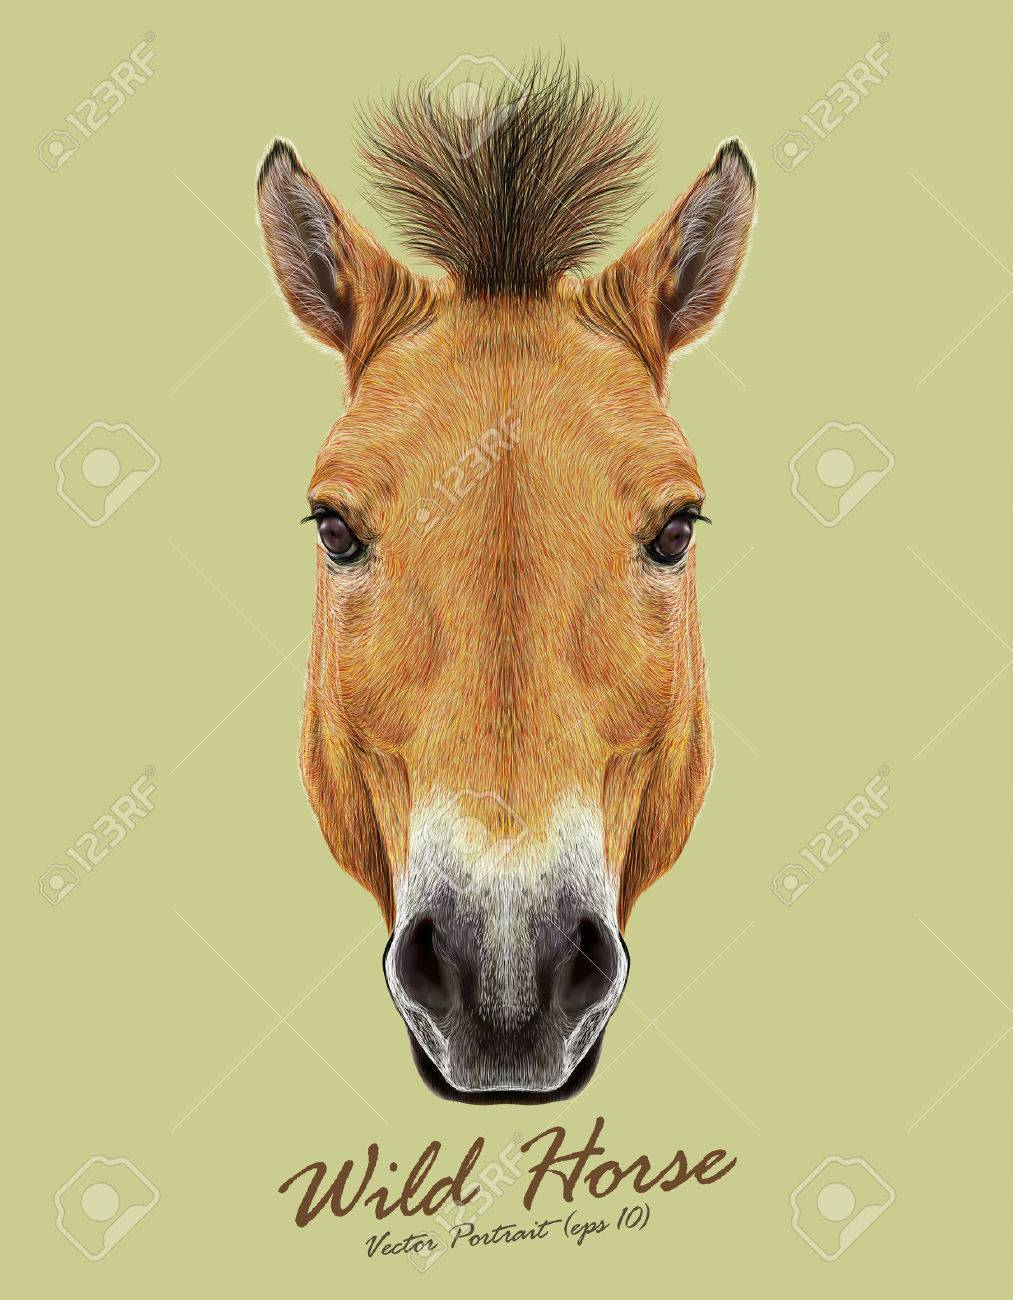 Head of Przewalski's horse. Wild Horse of Central Asia. - 46875632